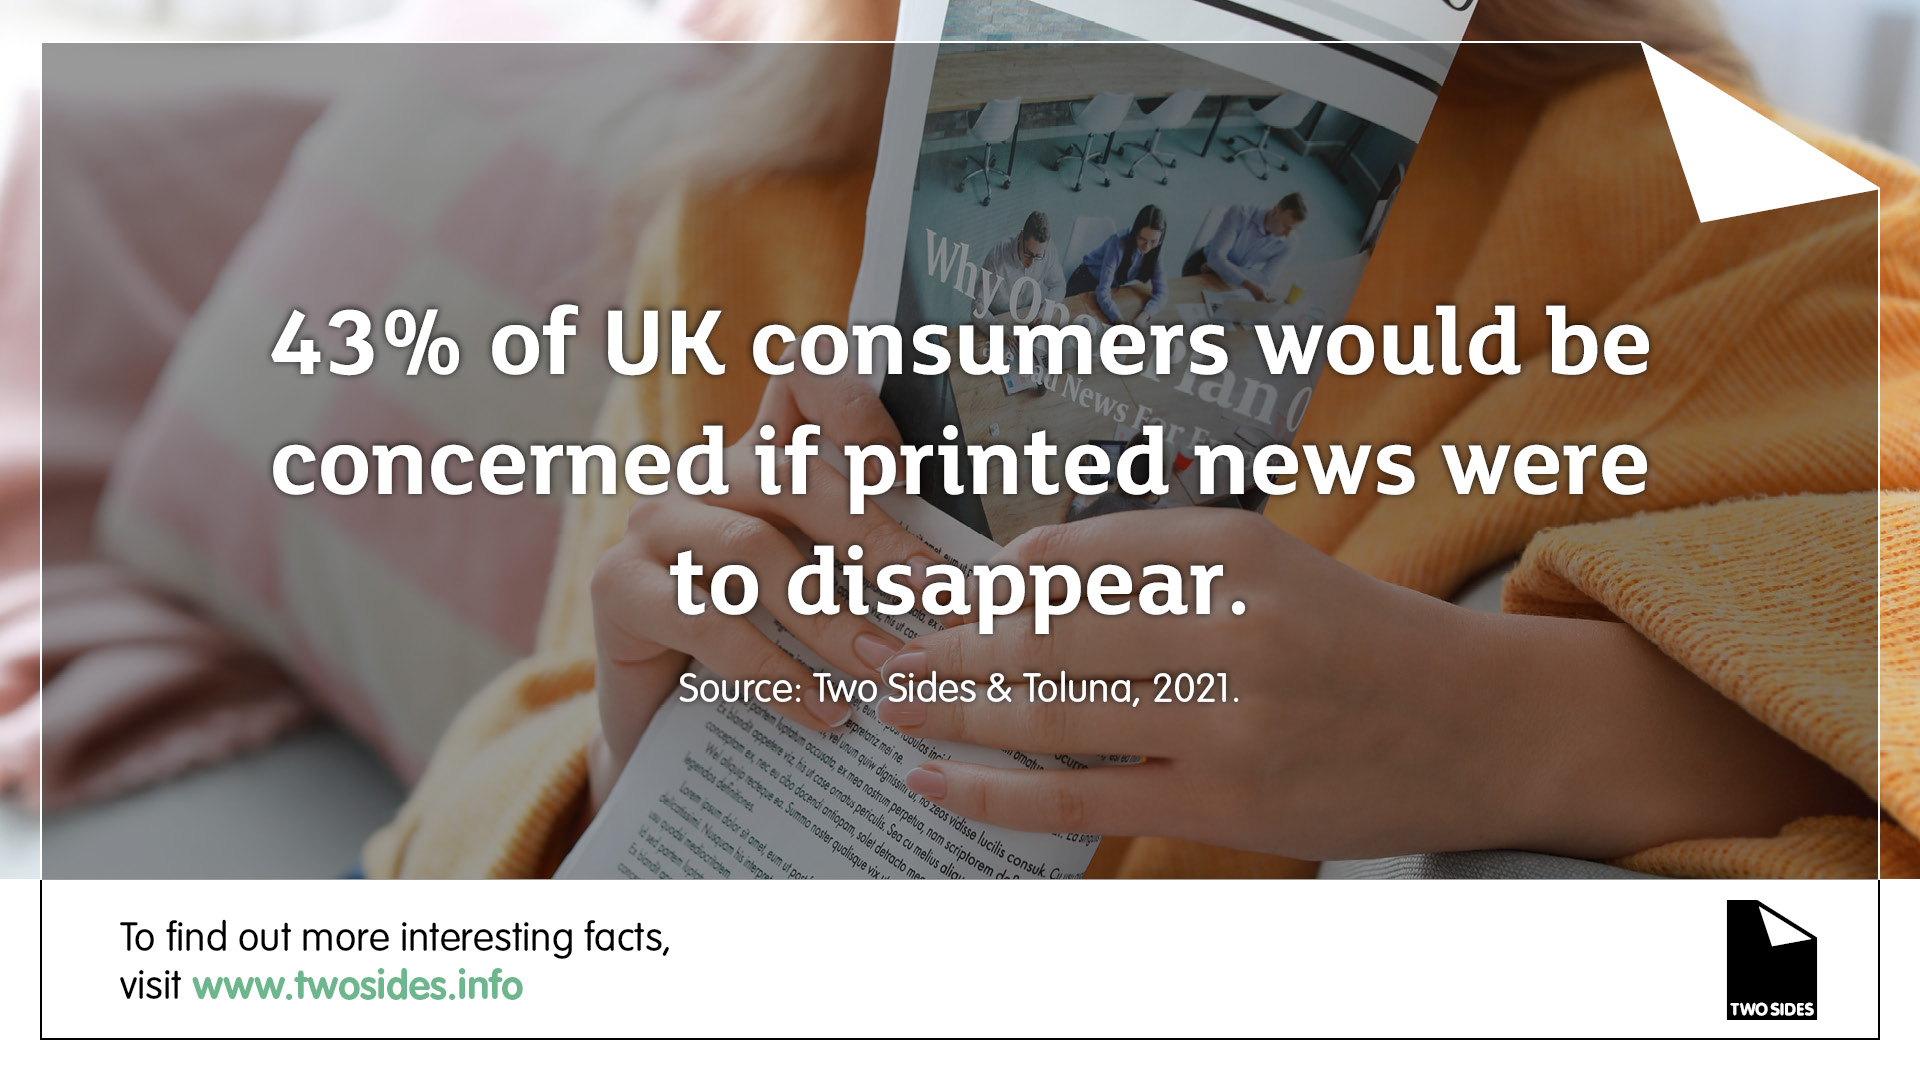 UK-consumers-concerned-if-printed-news-disappeared